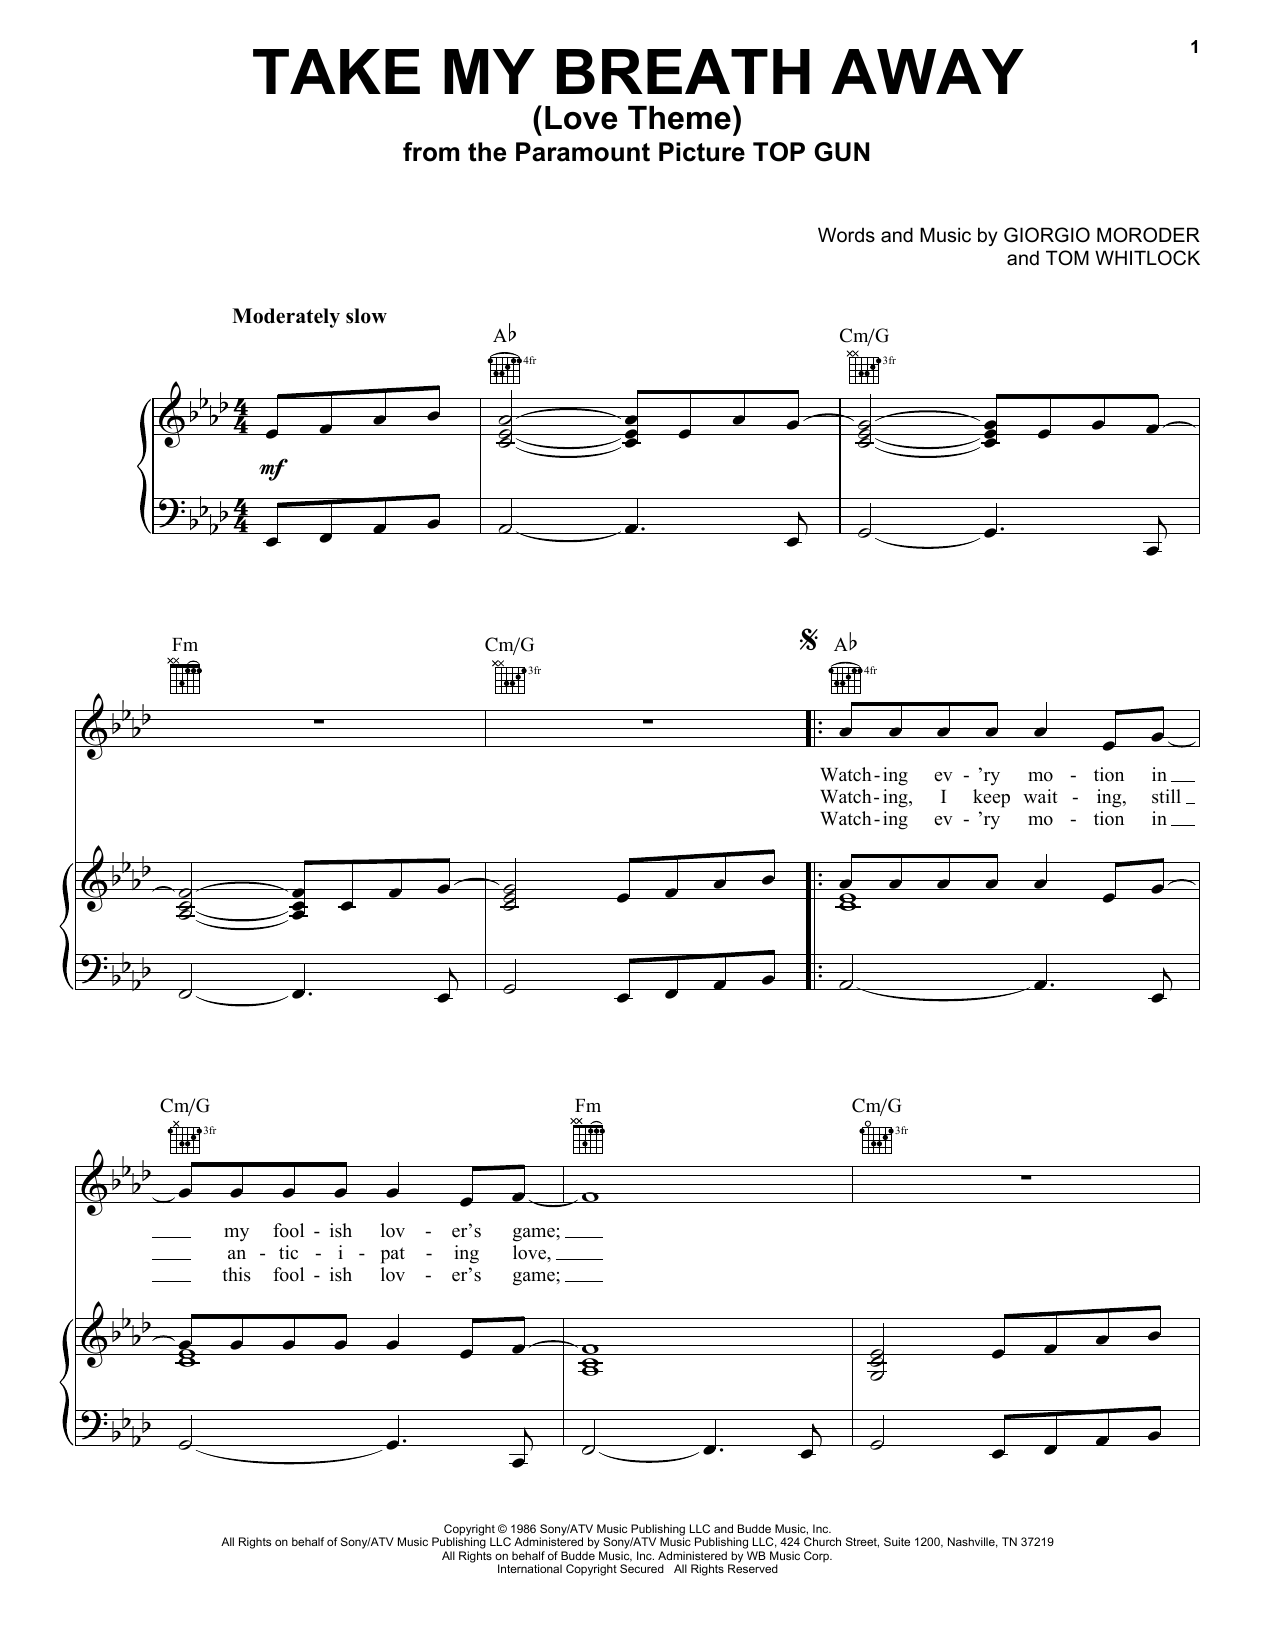 Berlin Take My Breath Away (Love Theme) sheet music notes and chords